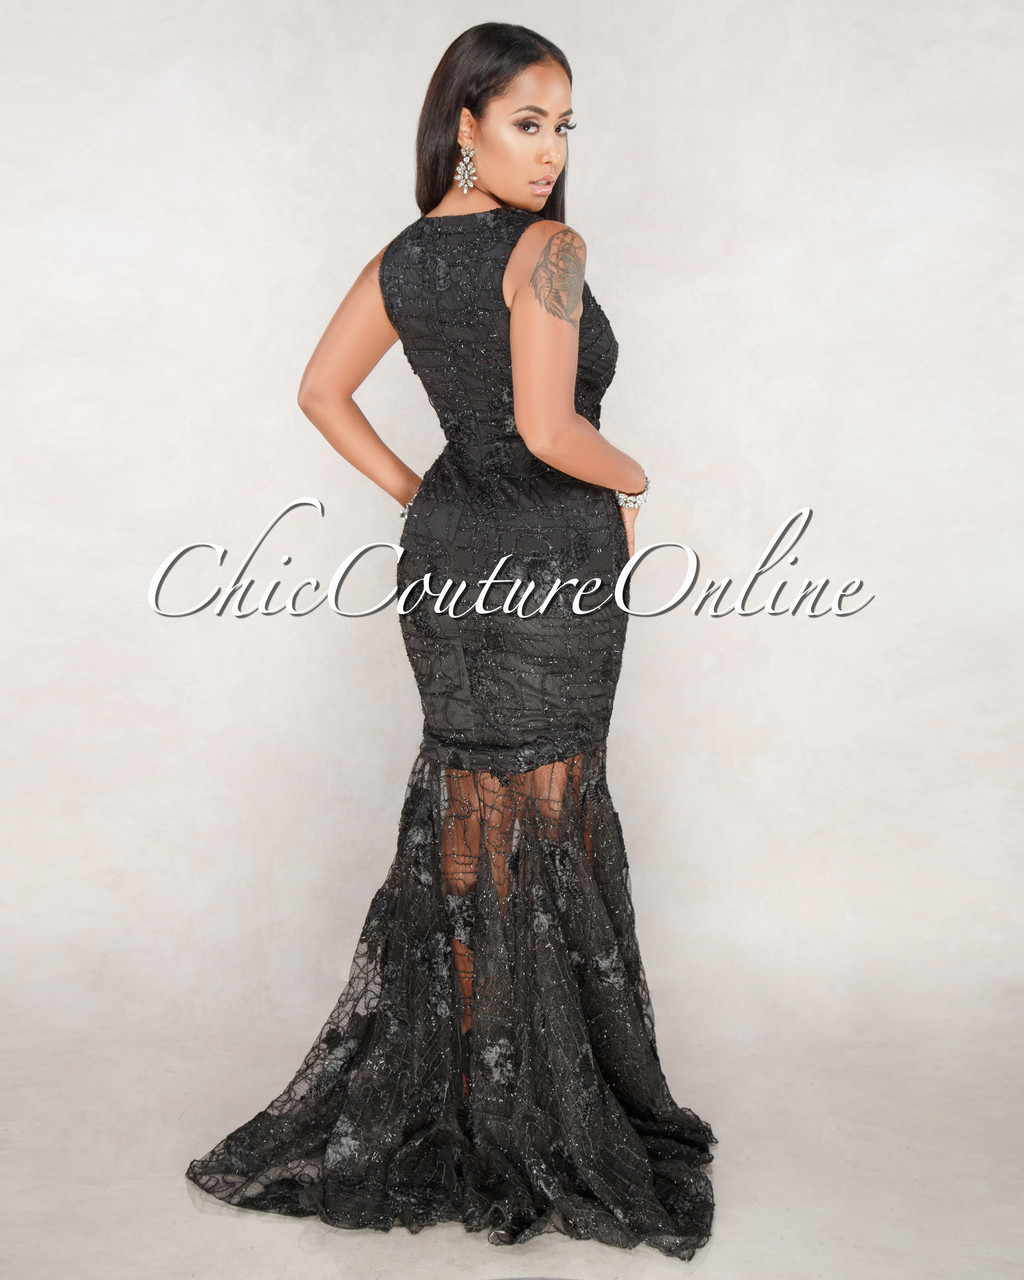 bcb736bab1ddb Moore Black Lace Floral Embroidery Mermaid Gown. Price: $150.00. Image 1.  Larger / More Photos